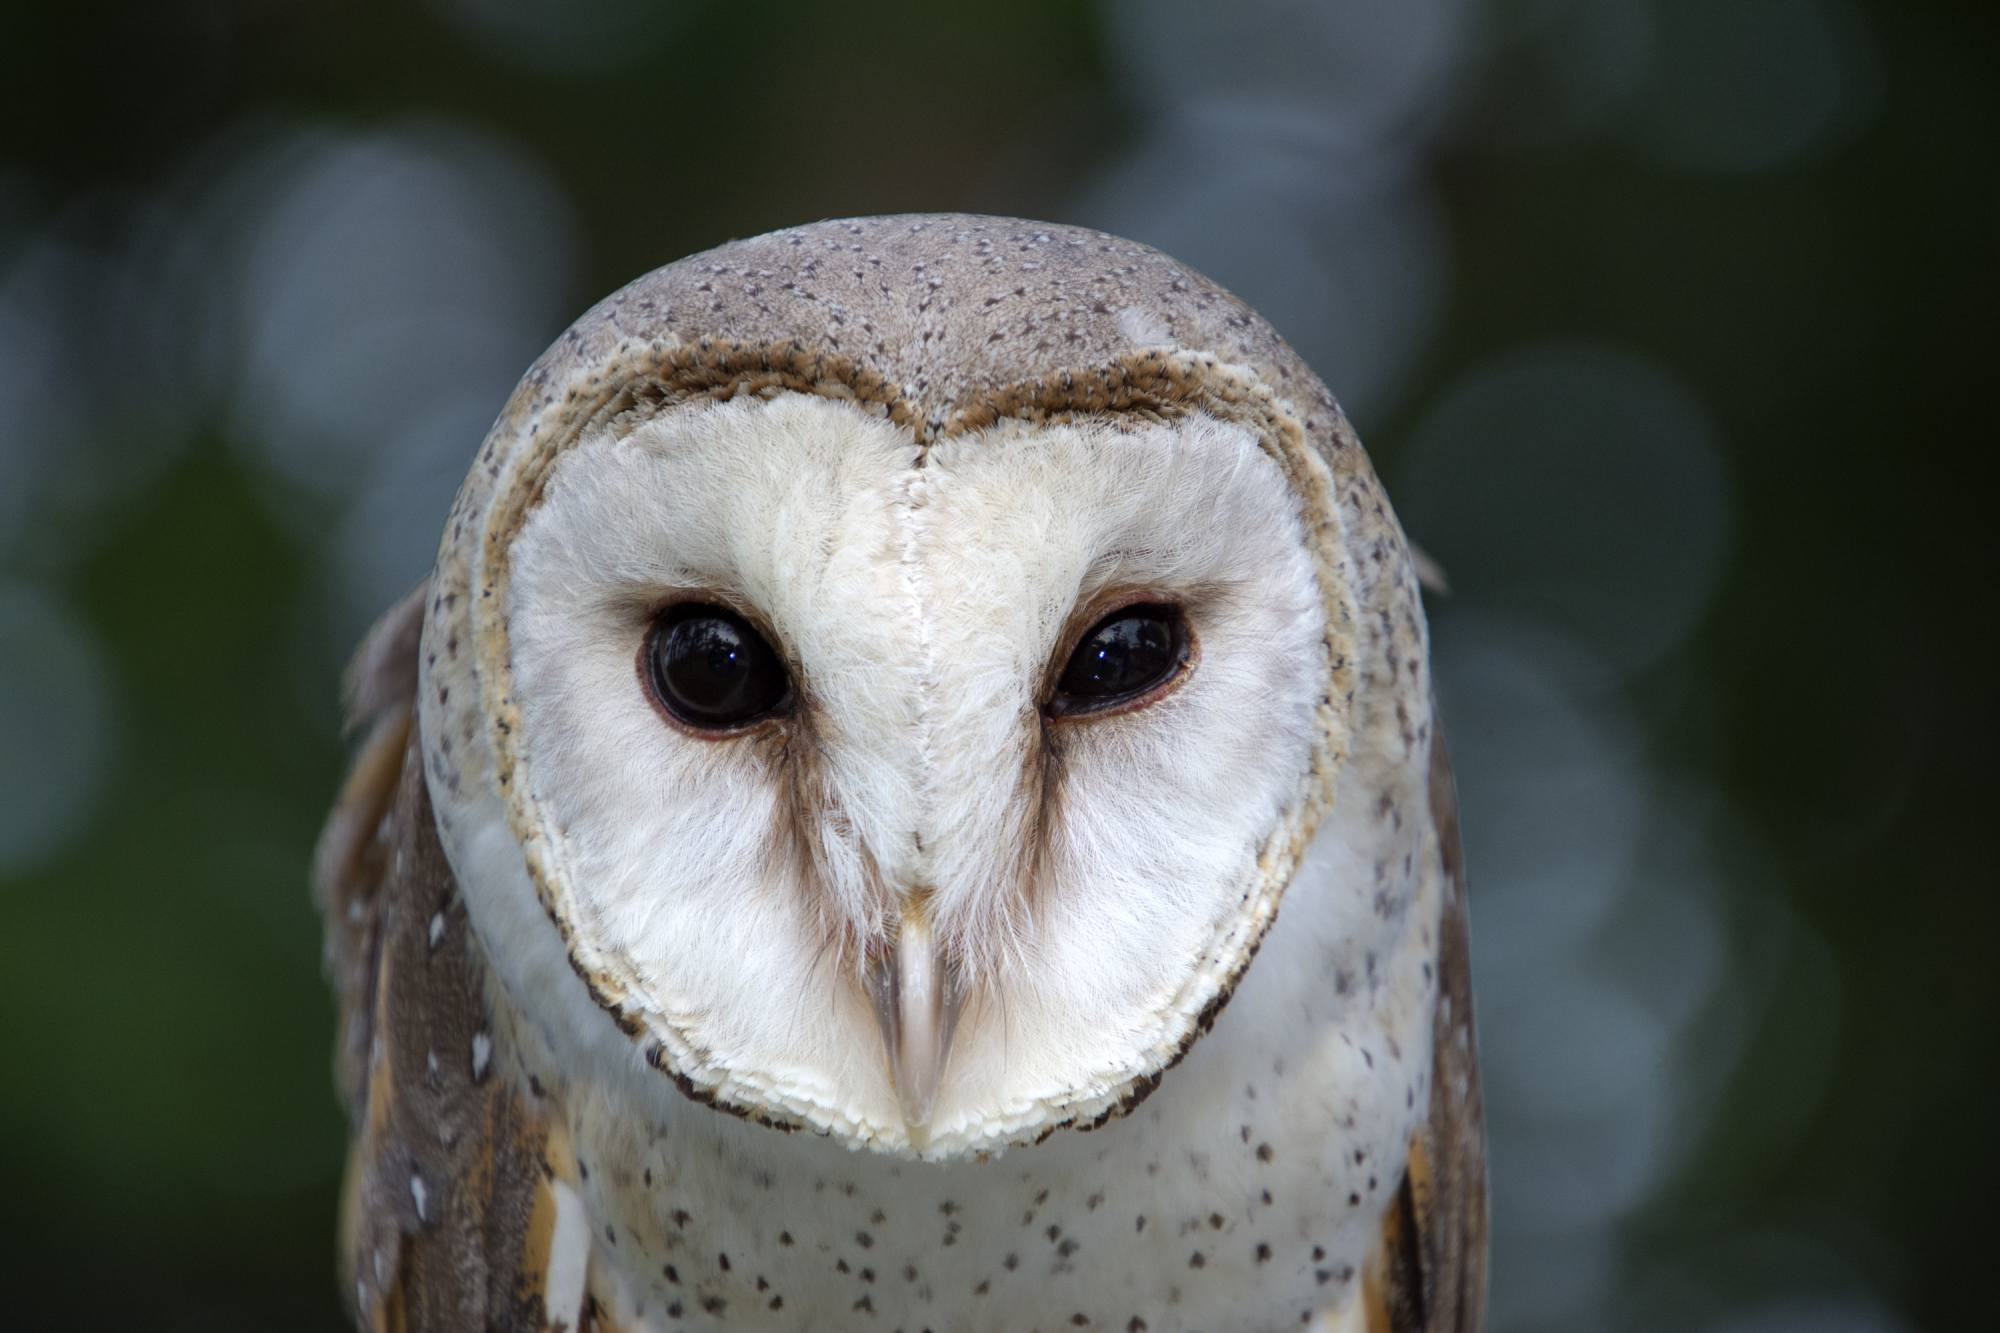 Close-up of barn owl's face, photographed with the Tamron 18-400mm f/3.5-6.3 Di II VC HLD lens for Canon